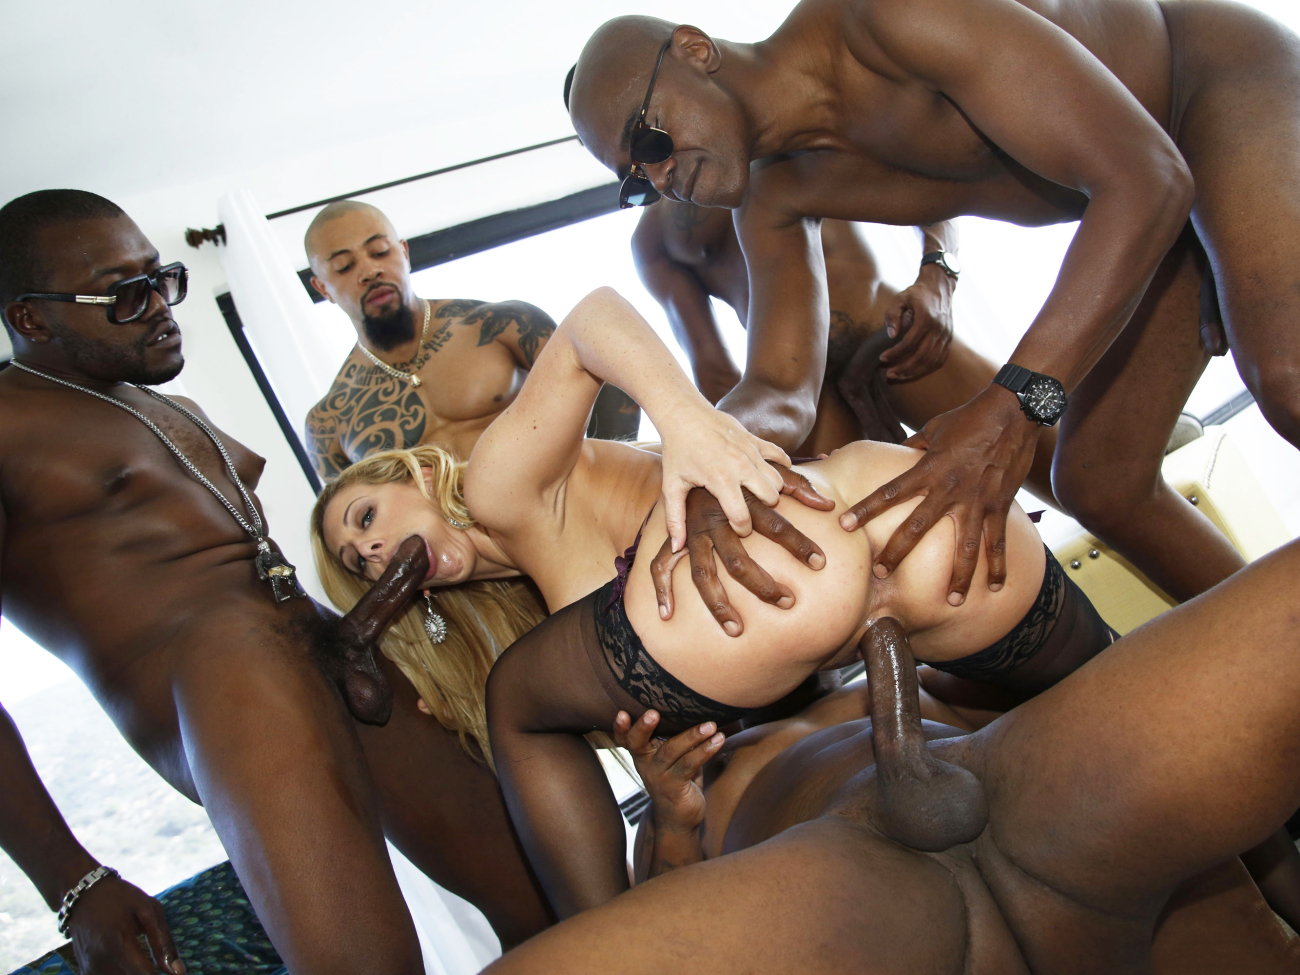 Something also Gang bang black cock think - images XXX